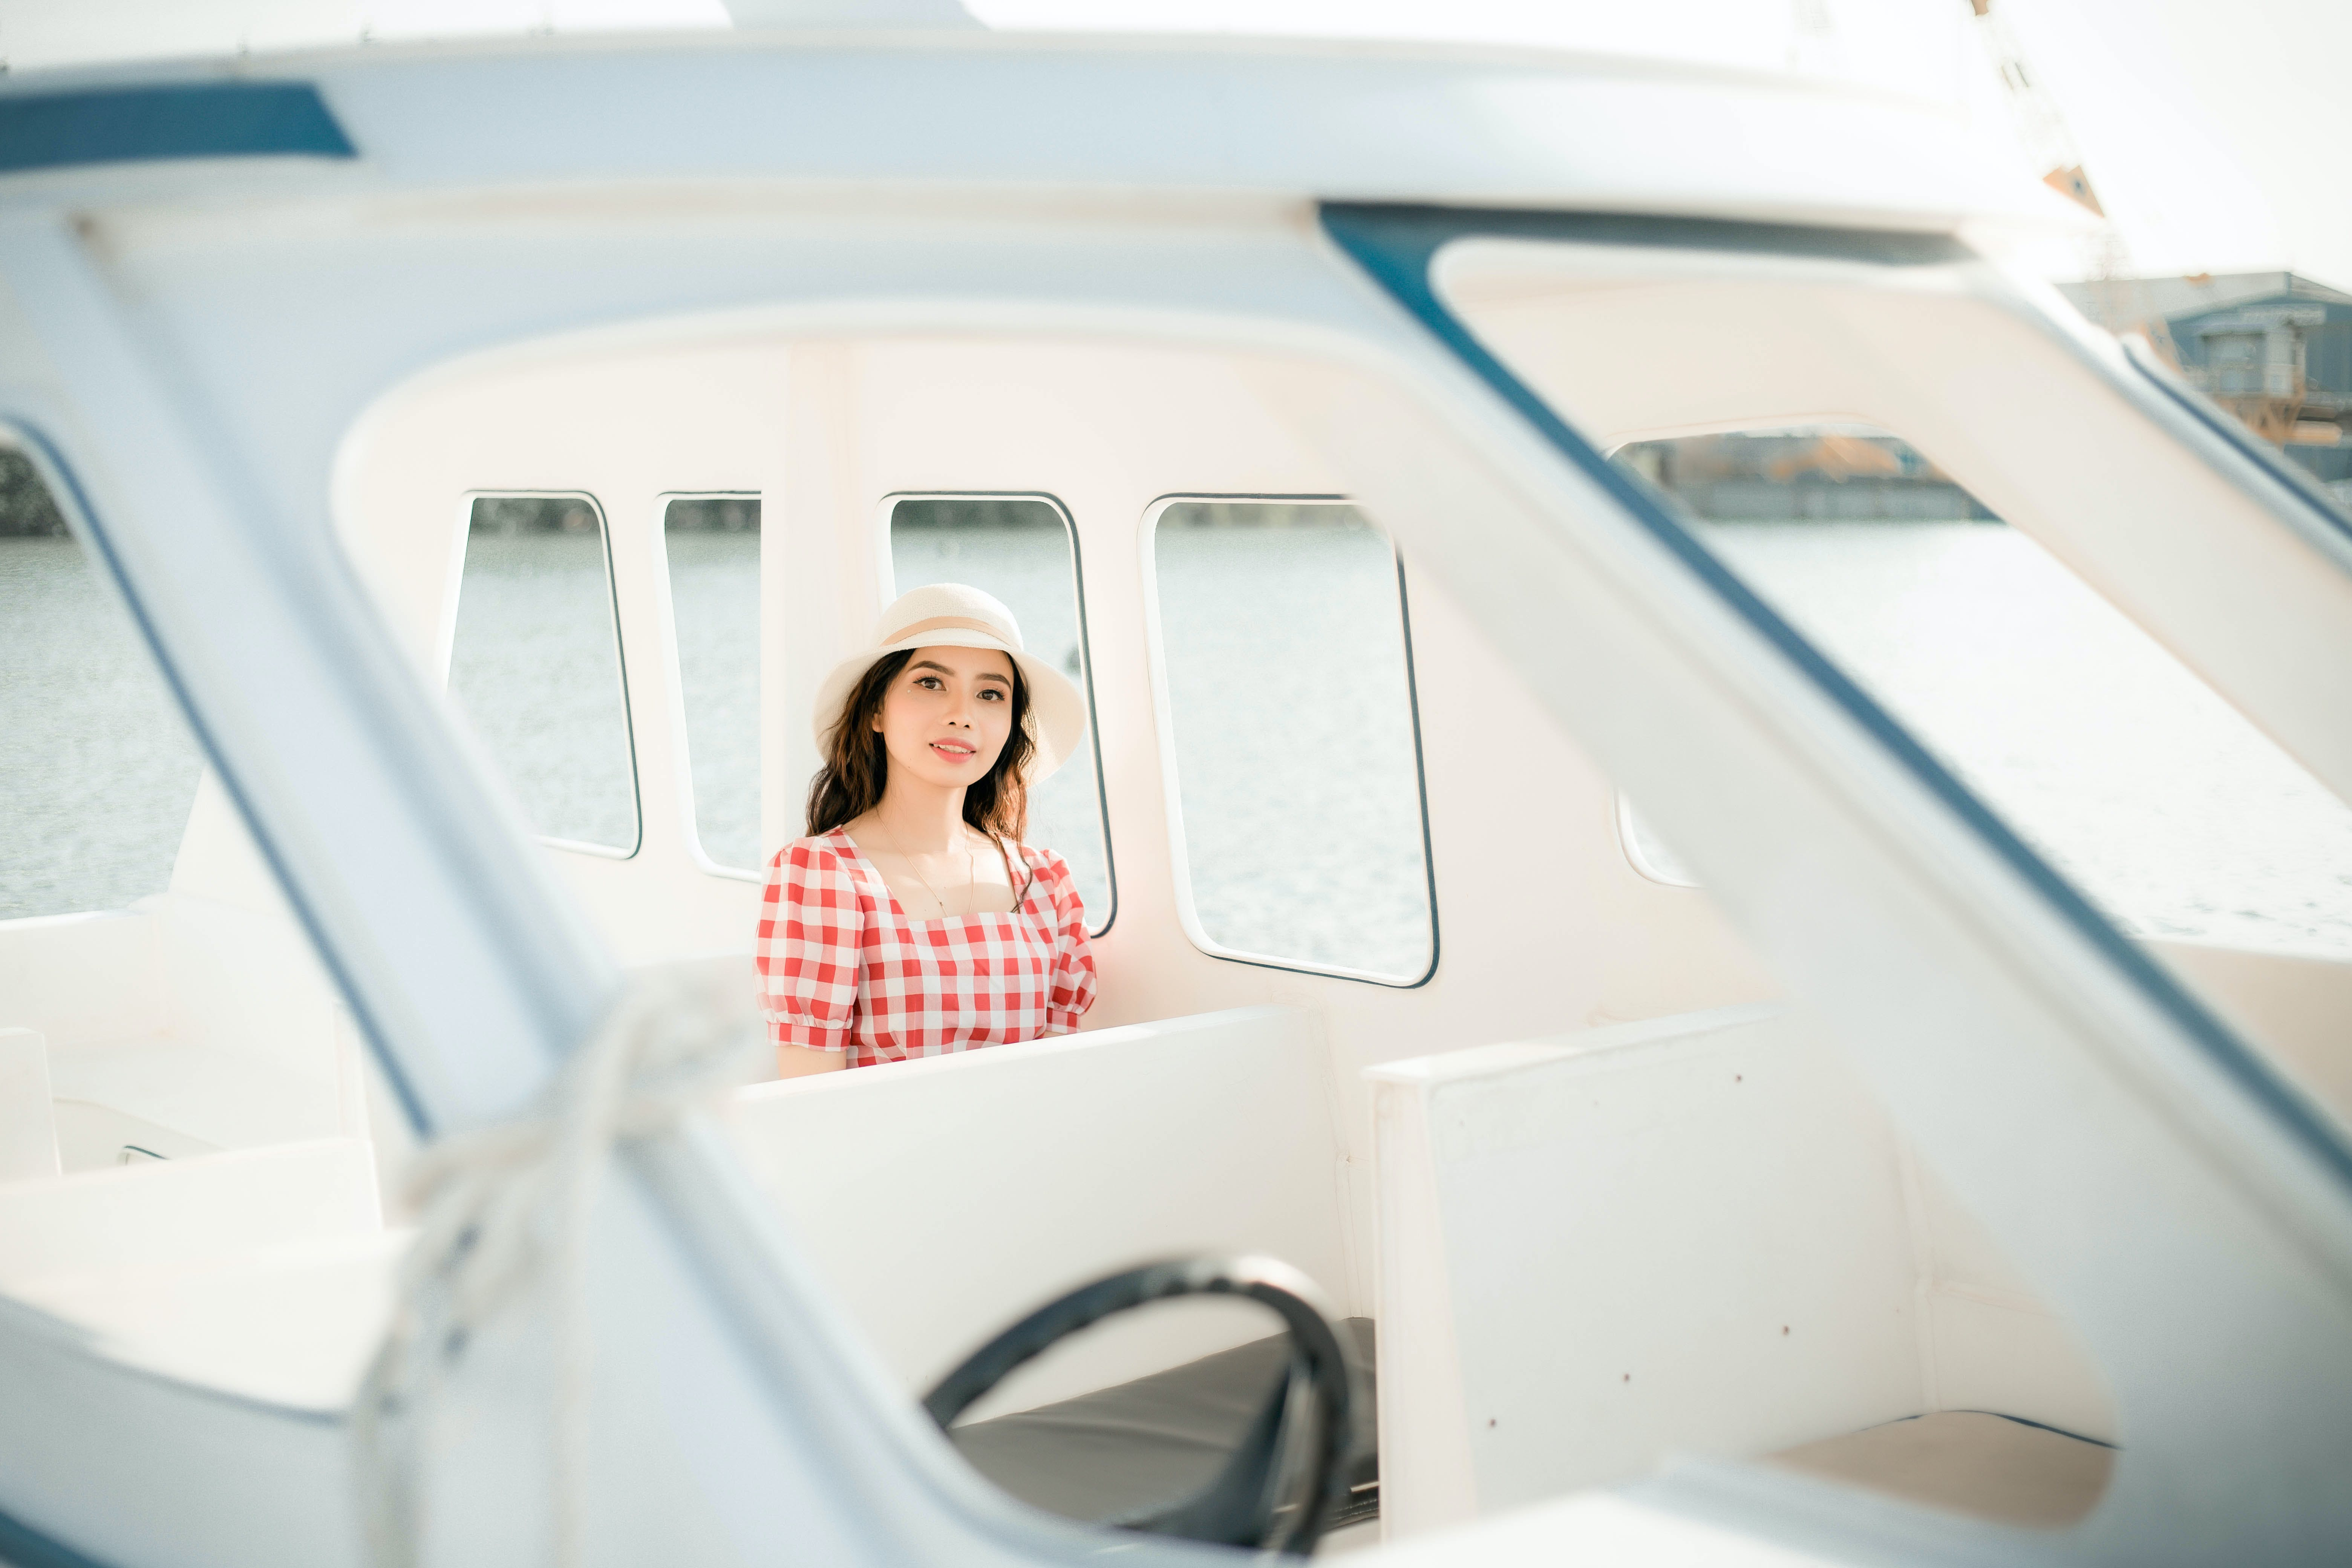 Woman Wearing Hat And Gingham Top Sitting In Powerboat